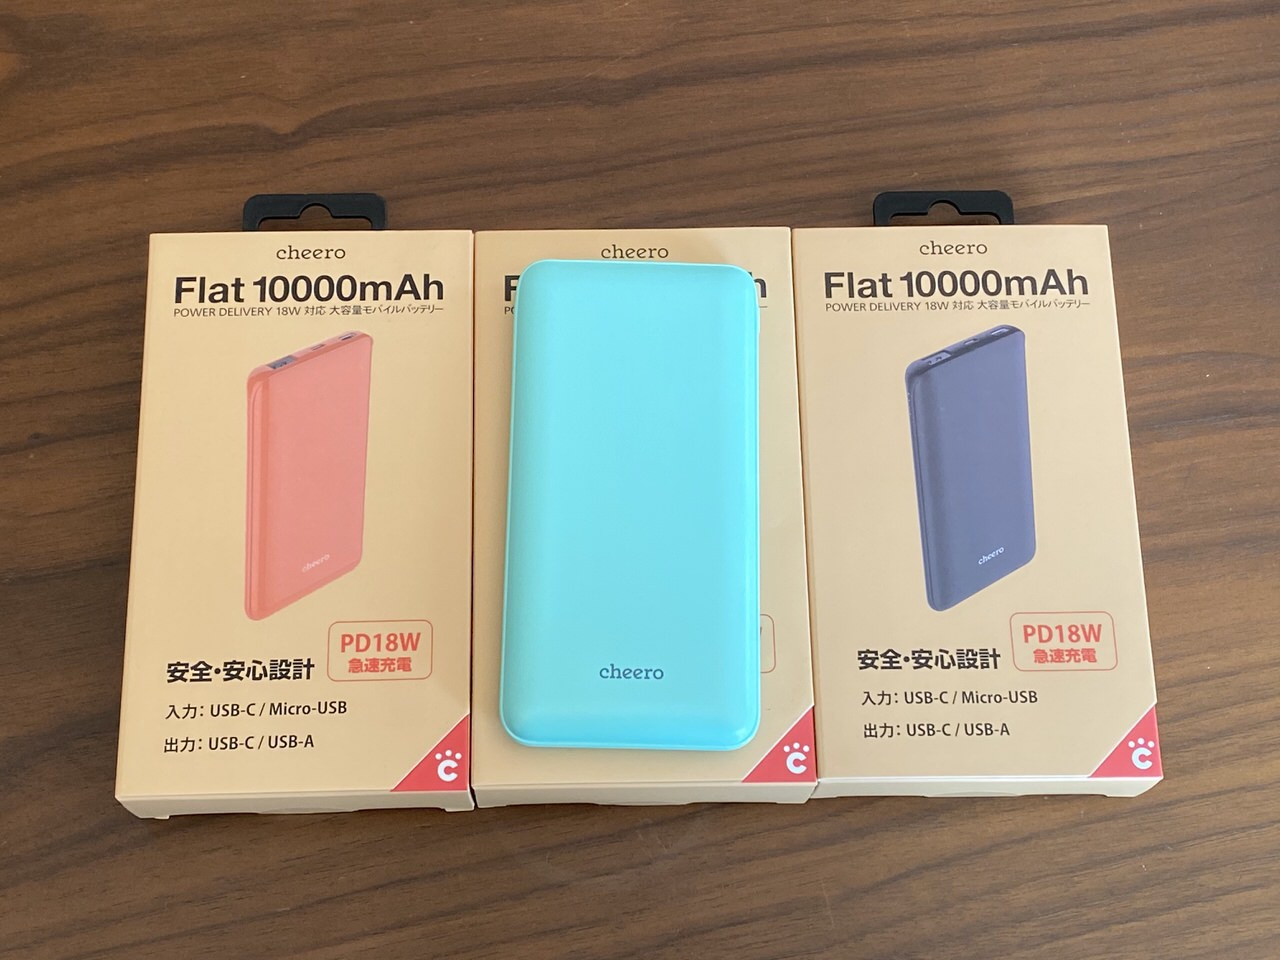 「Flat 10000mAh with Power Delivery 18W」1